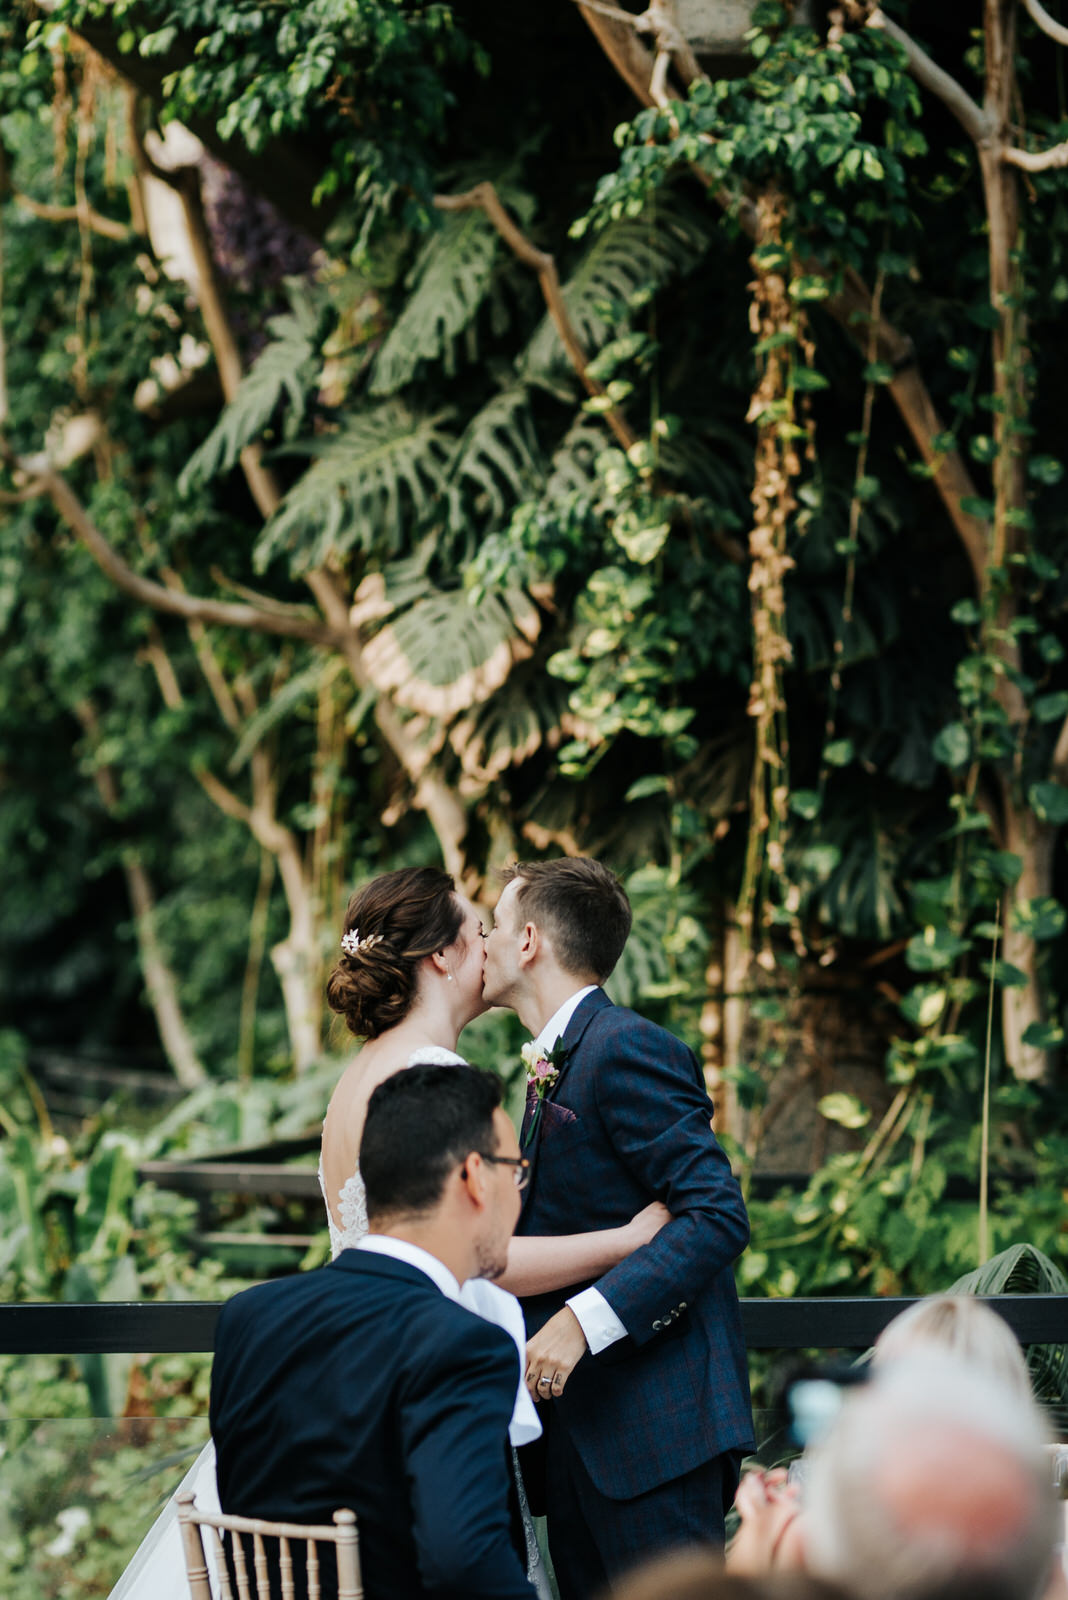 Groom kisses bride on the cheek while gorgeous greenery can be s